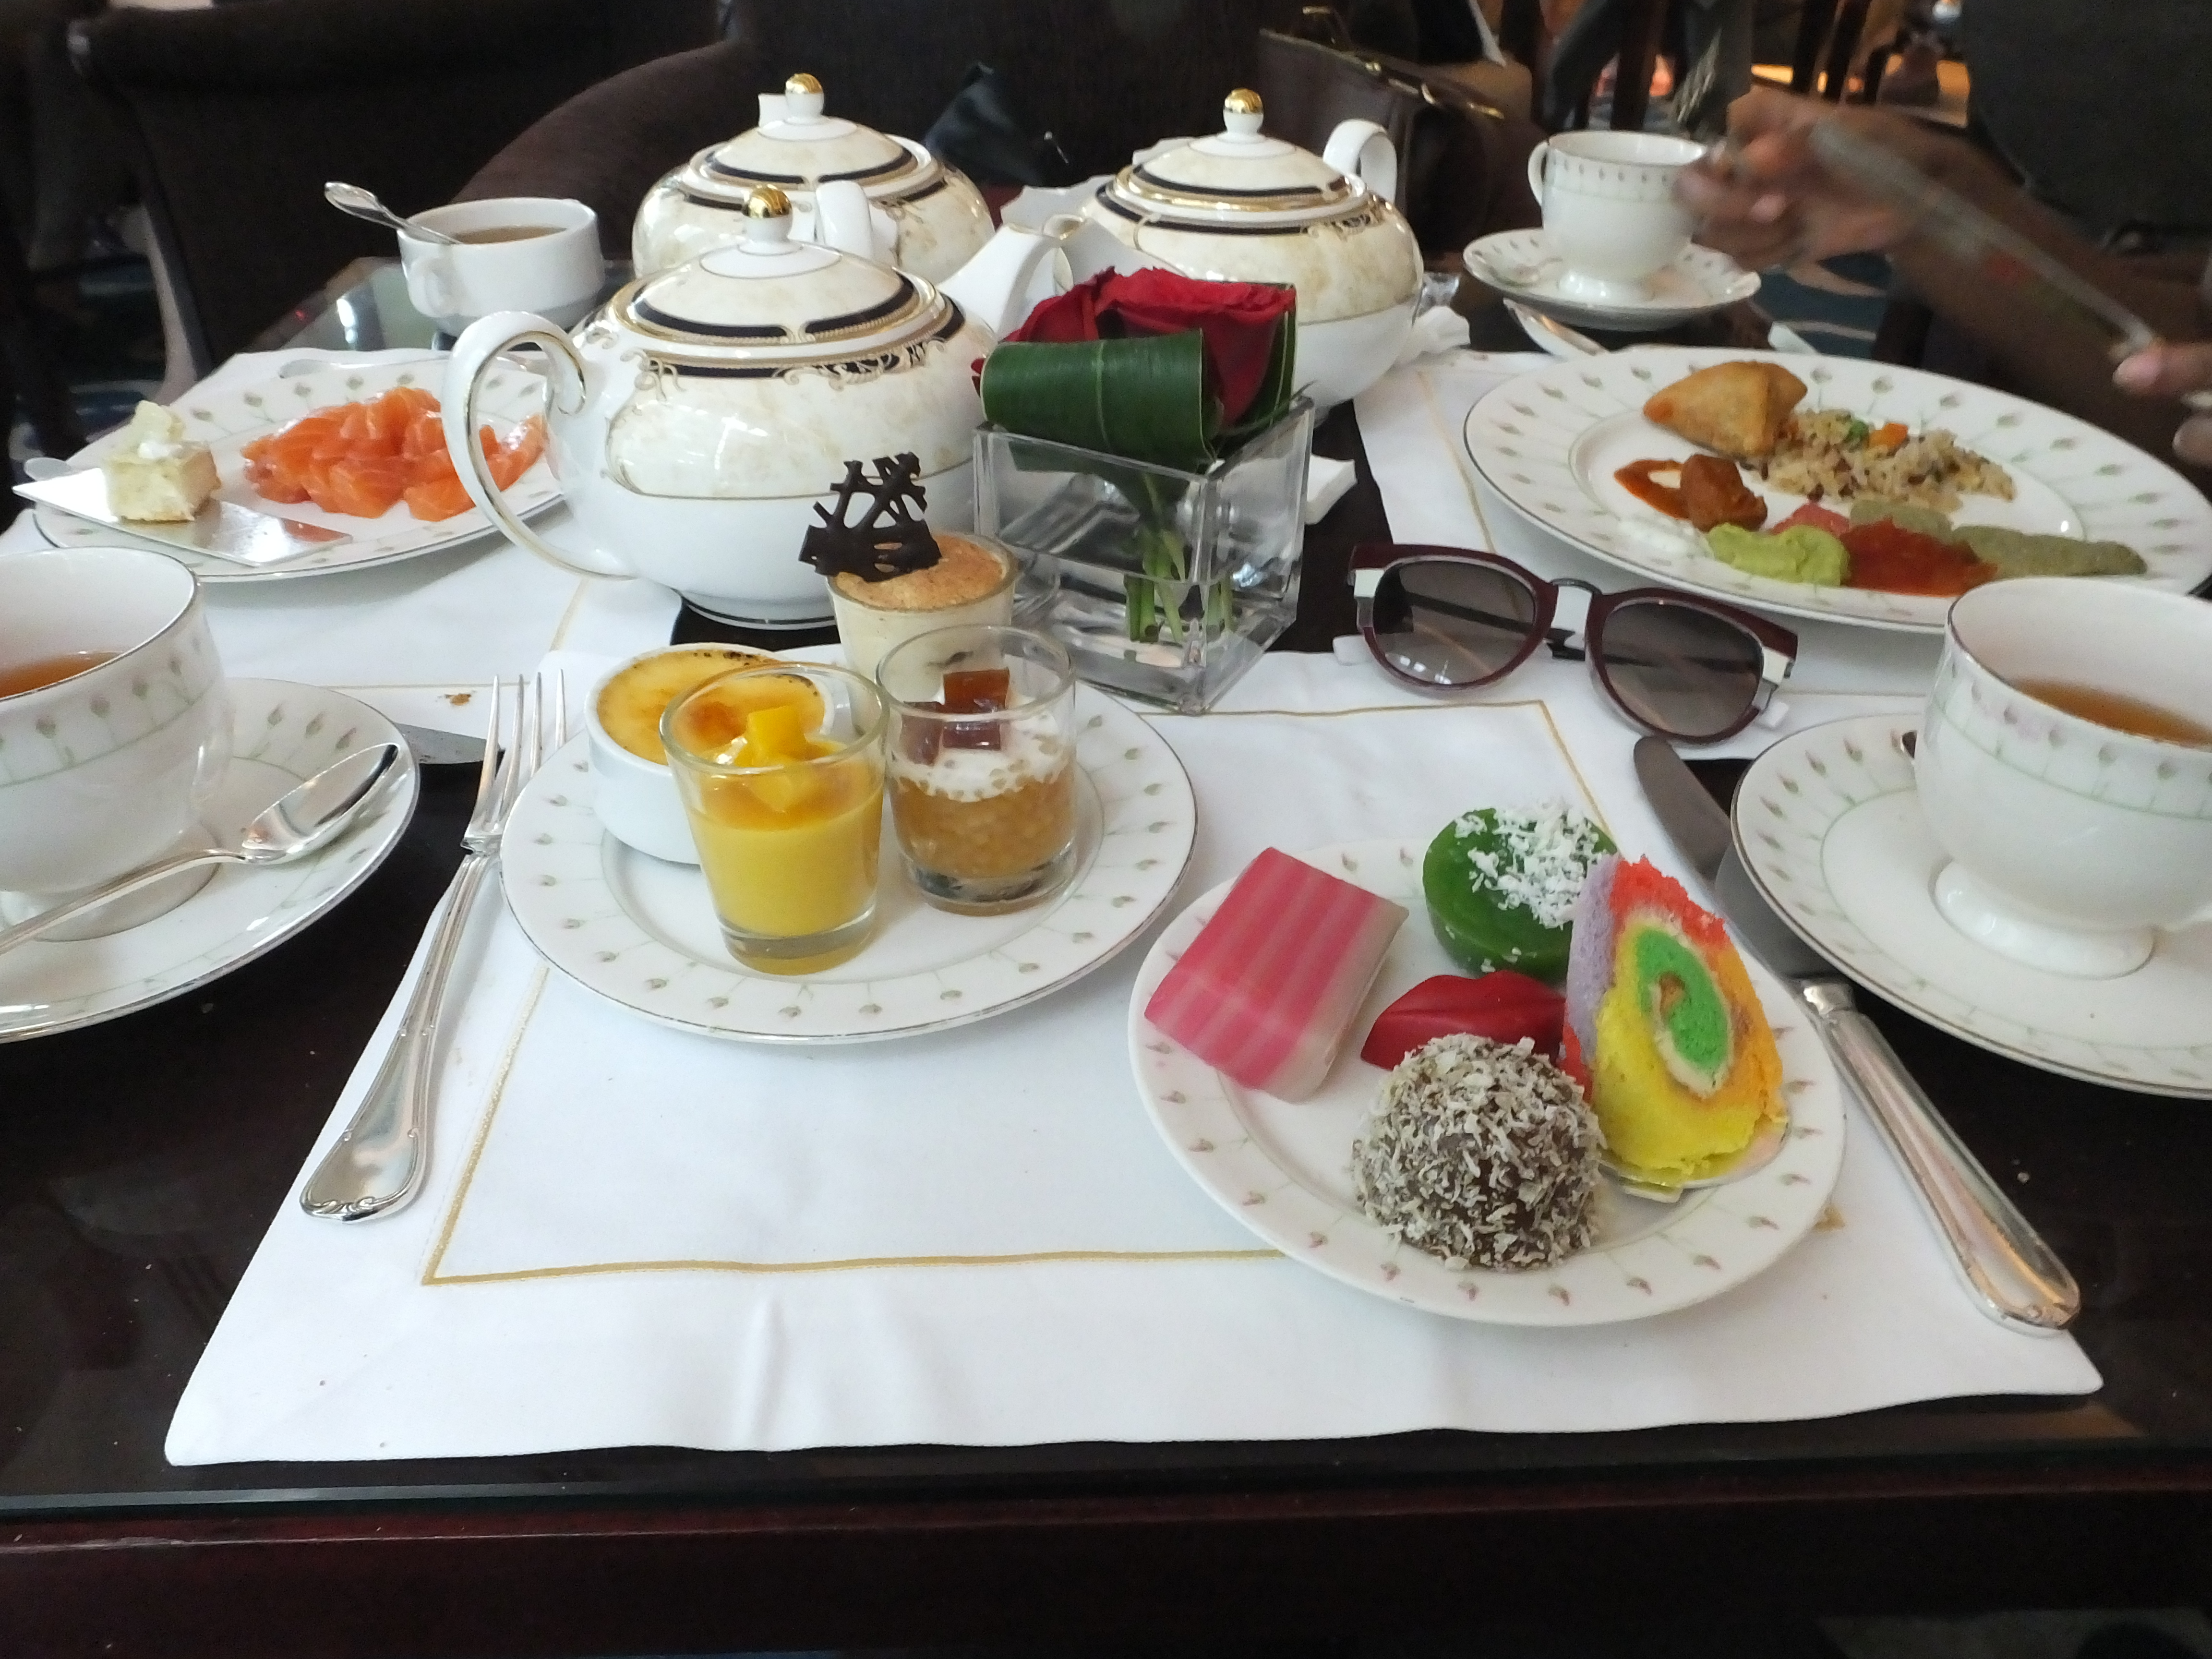 Day with Kiss: High Tea Buffet at The Rose Veranda | Shangri-La Hotel Singapore. Billykiss Azeez - Your Favourite Muse, lifestyle blogger